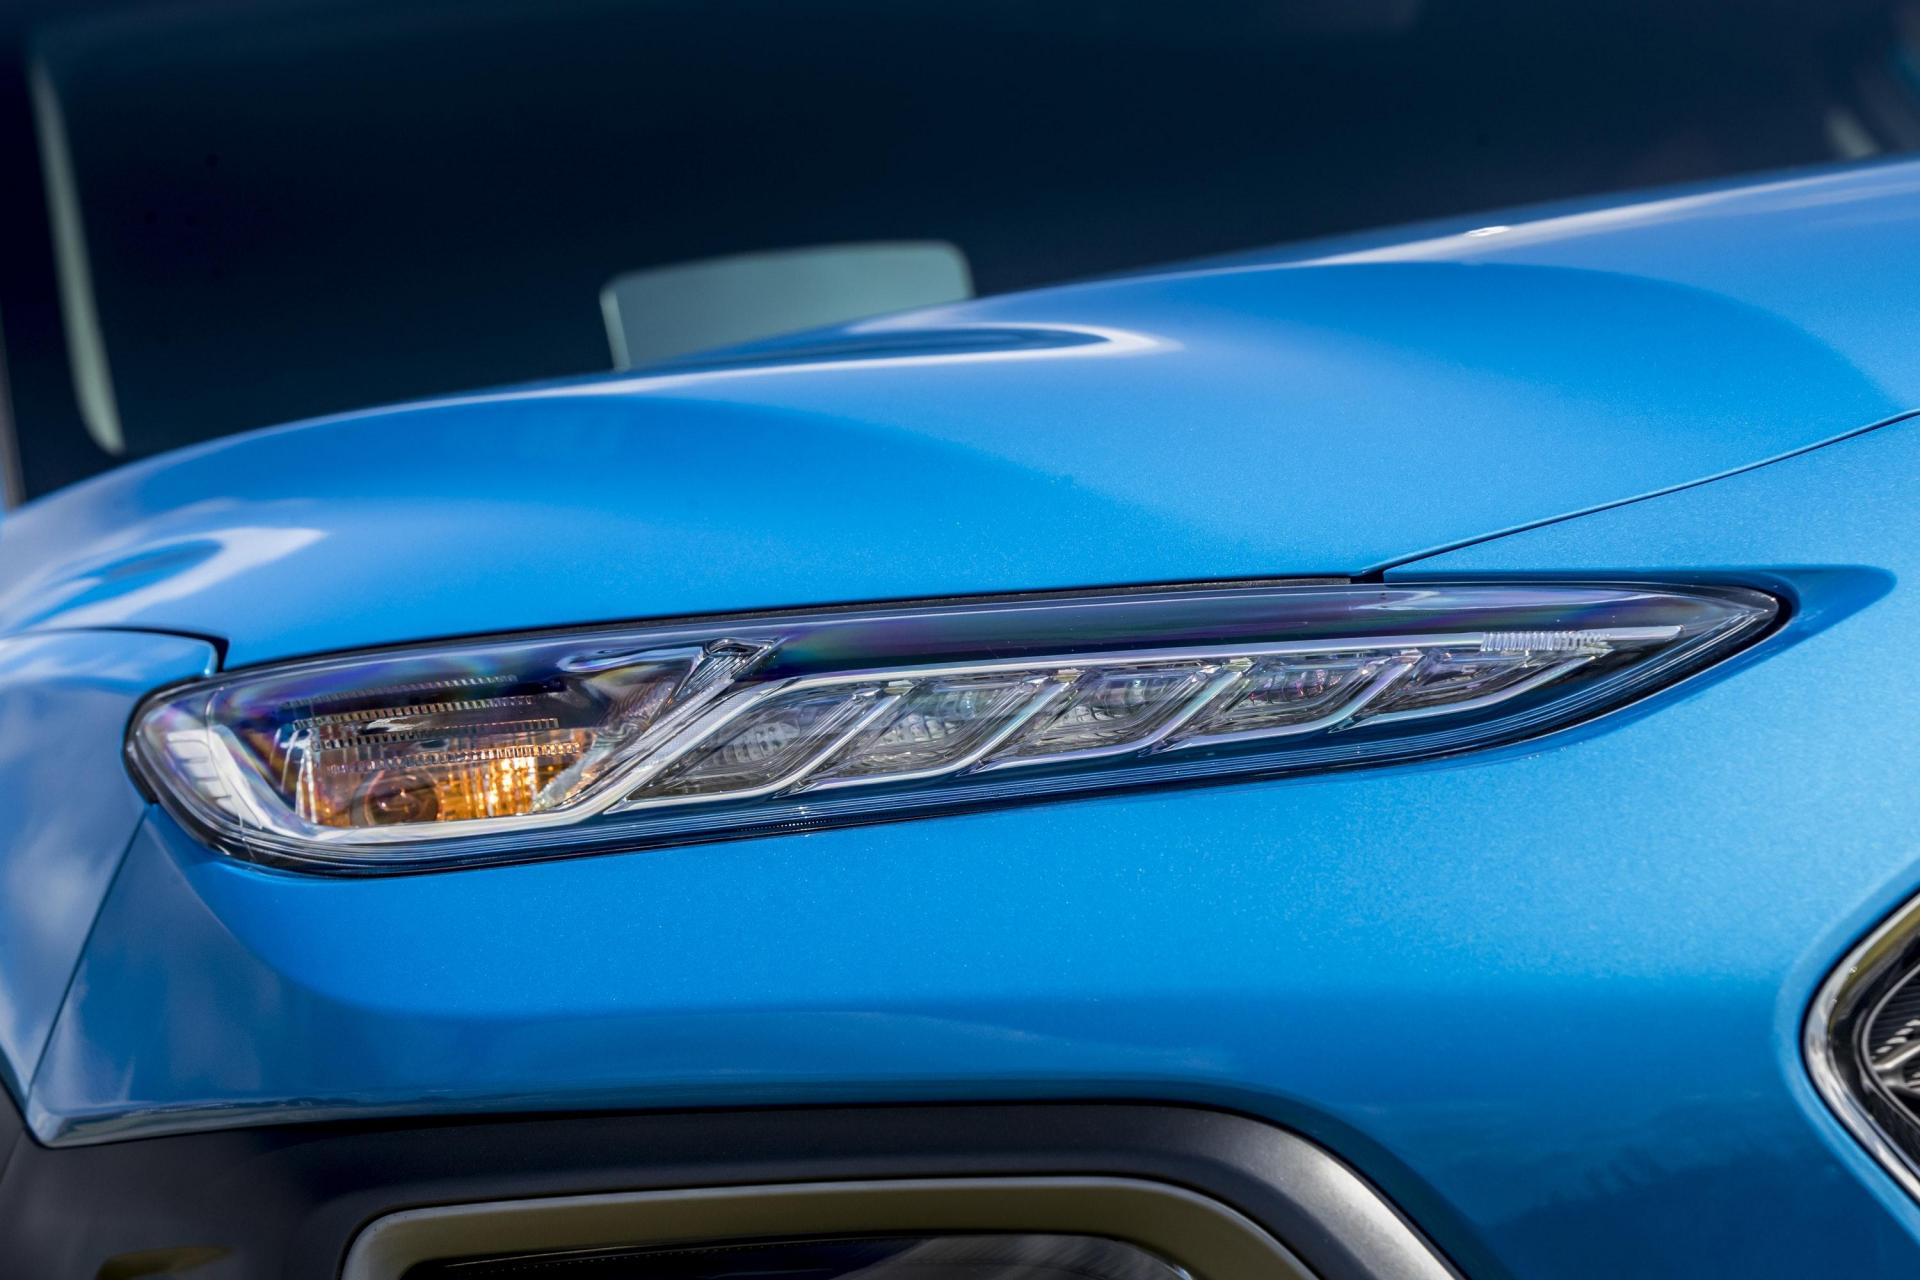 The Kona's sleek headlights give the front of the car a distinctive look.